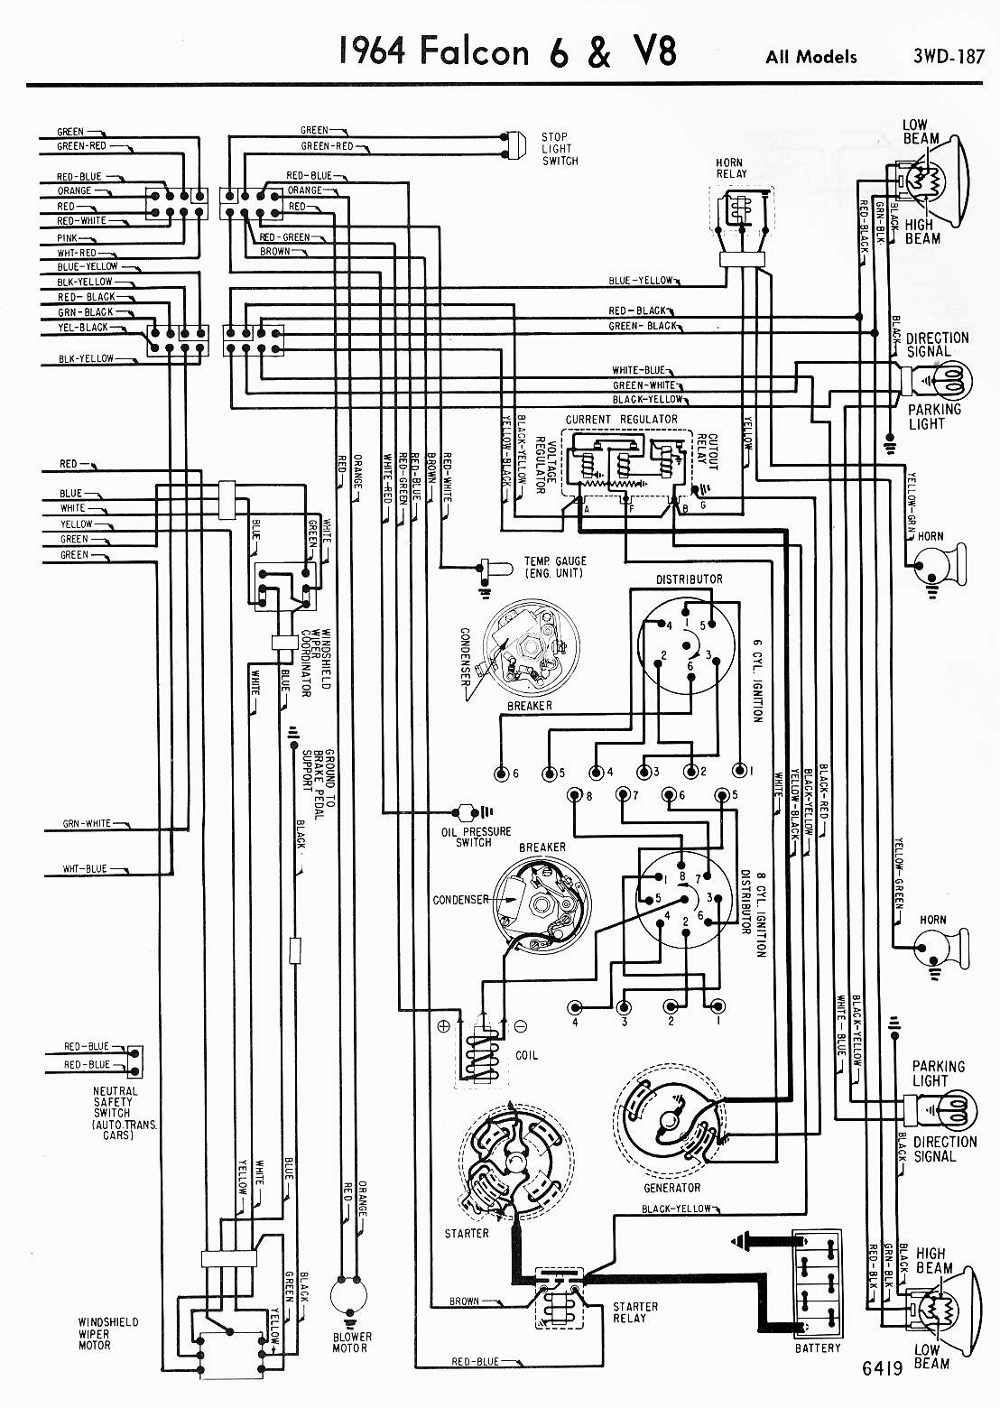 1964 Ford Falcon Wiring Diagram Library 64 El Camino Diagrams Of 6 And V8 All